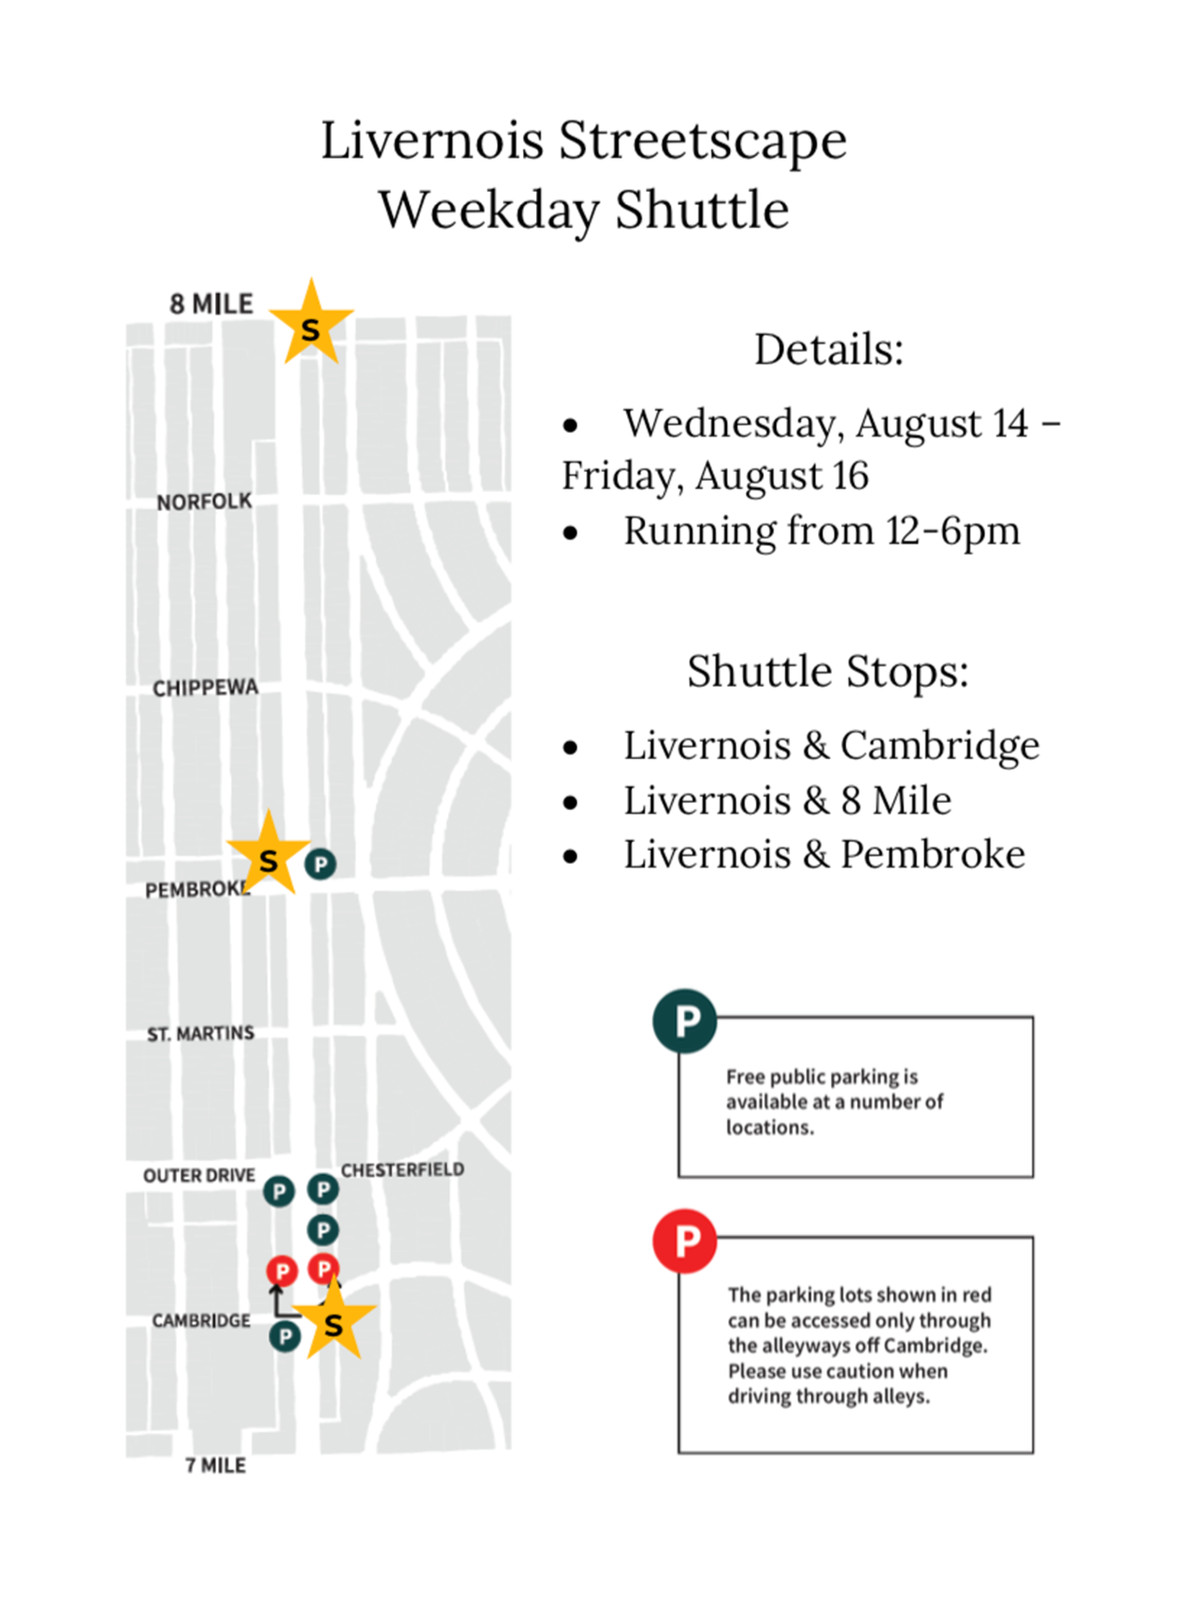 A map showing details of the pilot program for shuttle service along Livernois Avenue. It lists the three pickup locations with stars at those locations as well as where to find parking. The parking is marked with a red can in an alley off Cambridge.